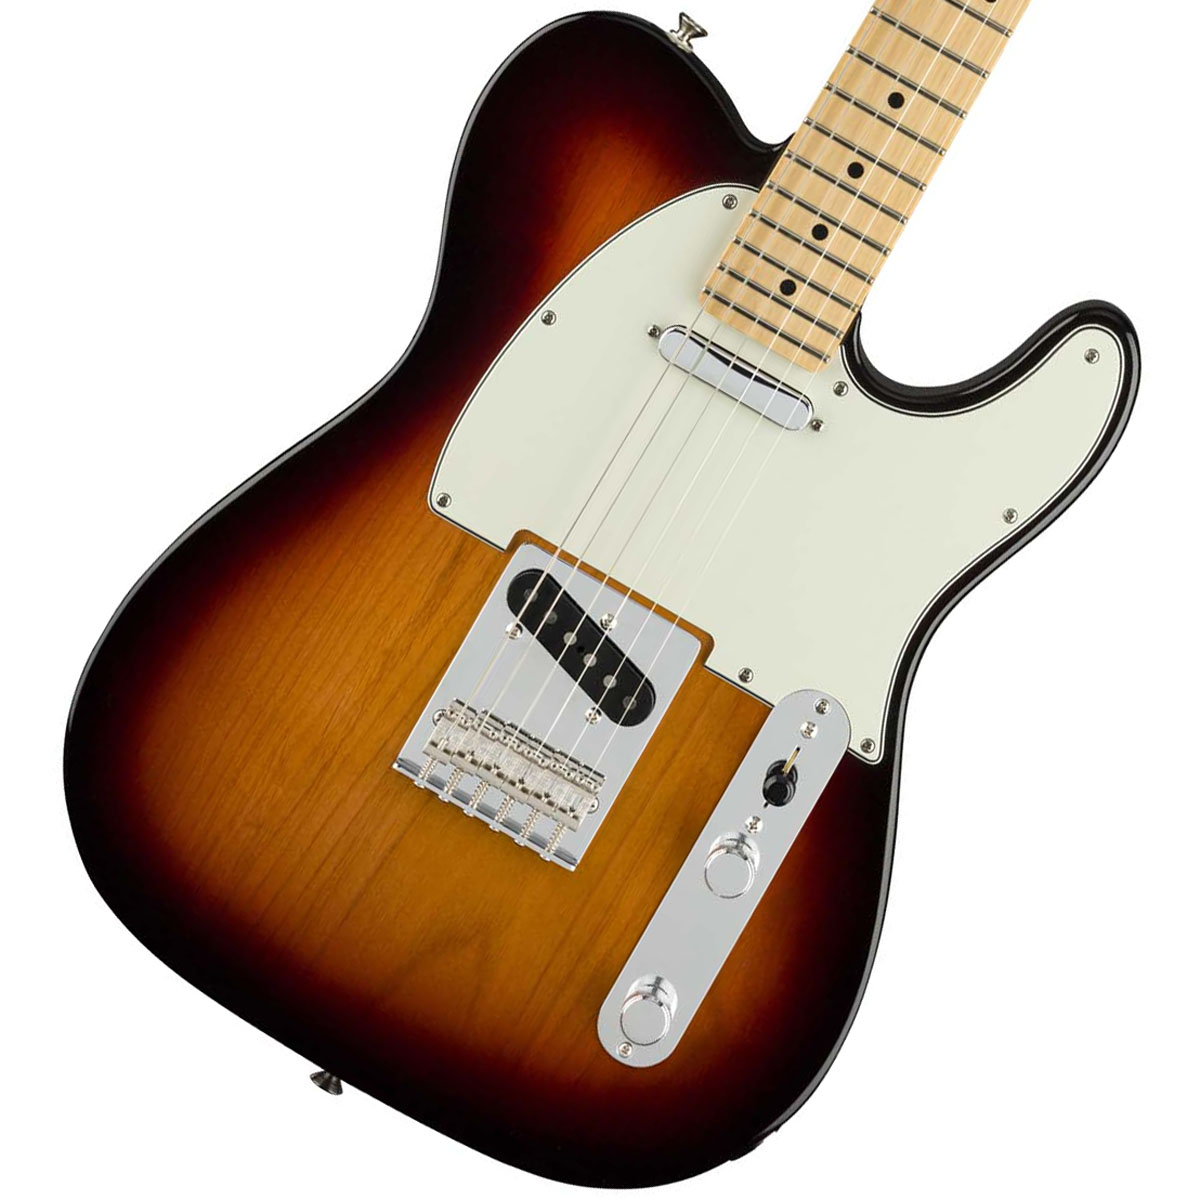 Fender / Player Series Telecaster 3 Color Sunburst Maple 《数量限定!FenderアンプFRONTMAN10Gもセット!/+591355890》【YRK】